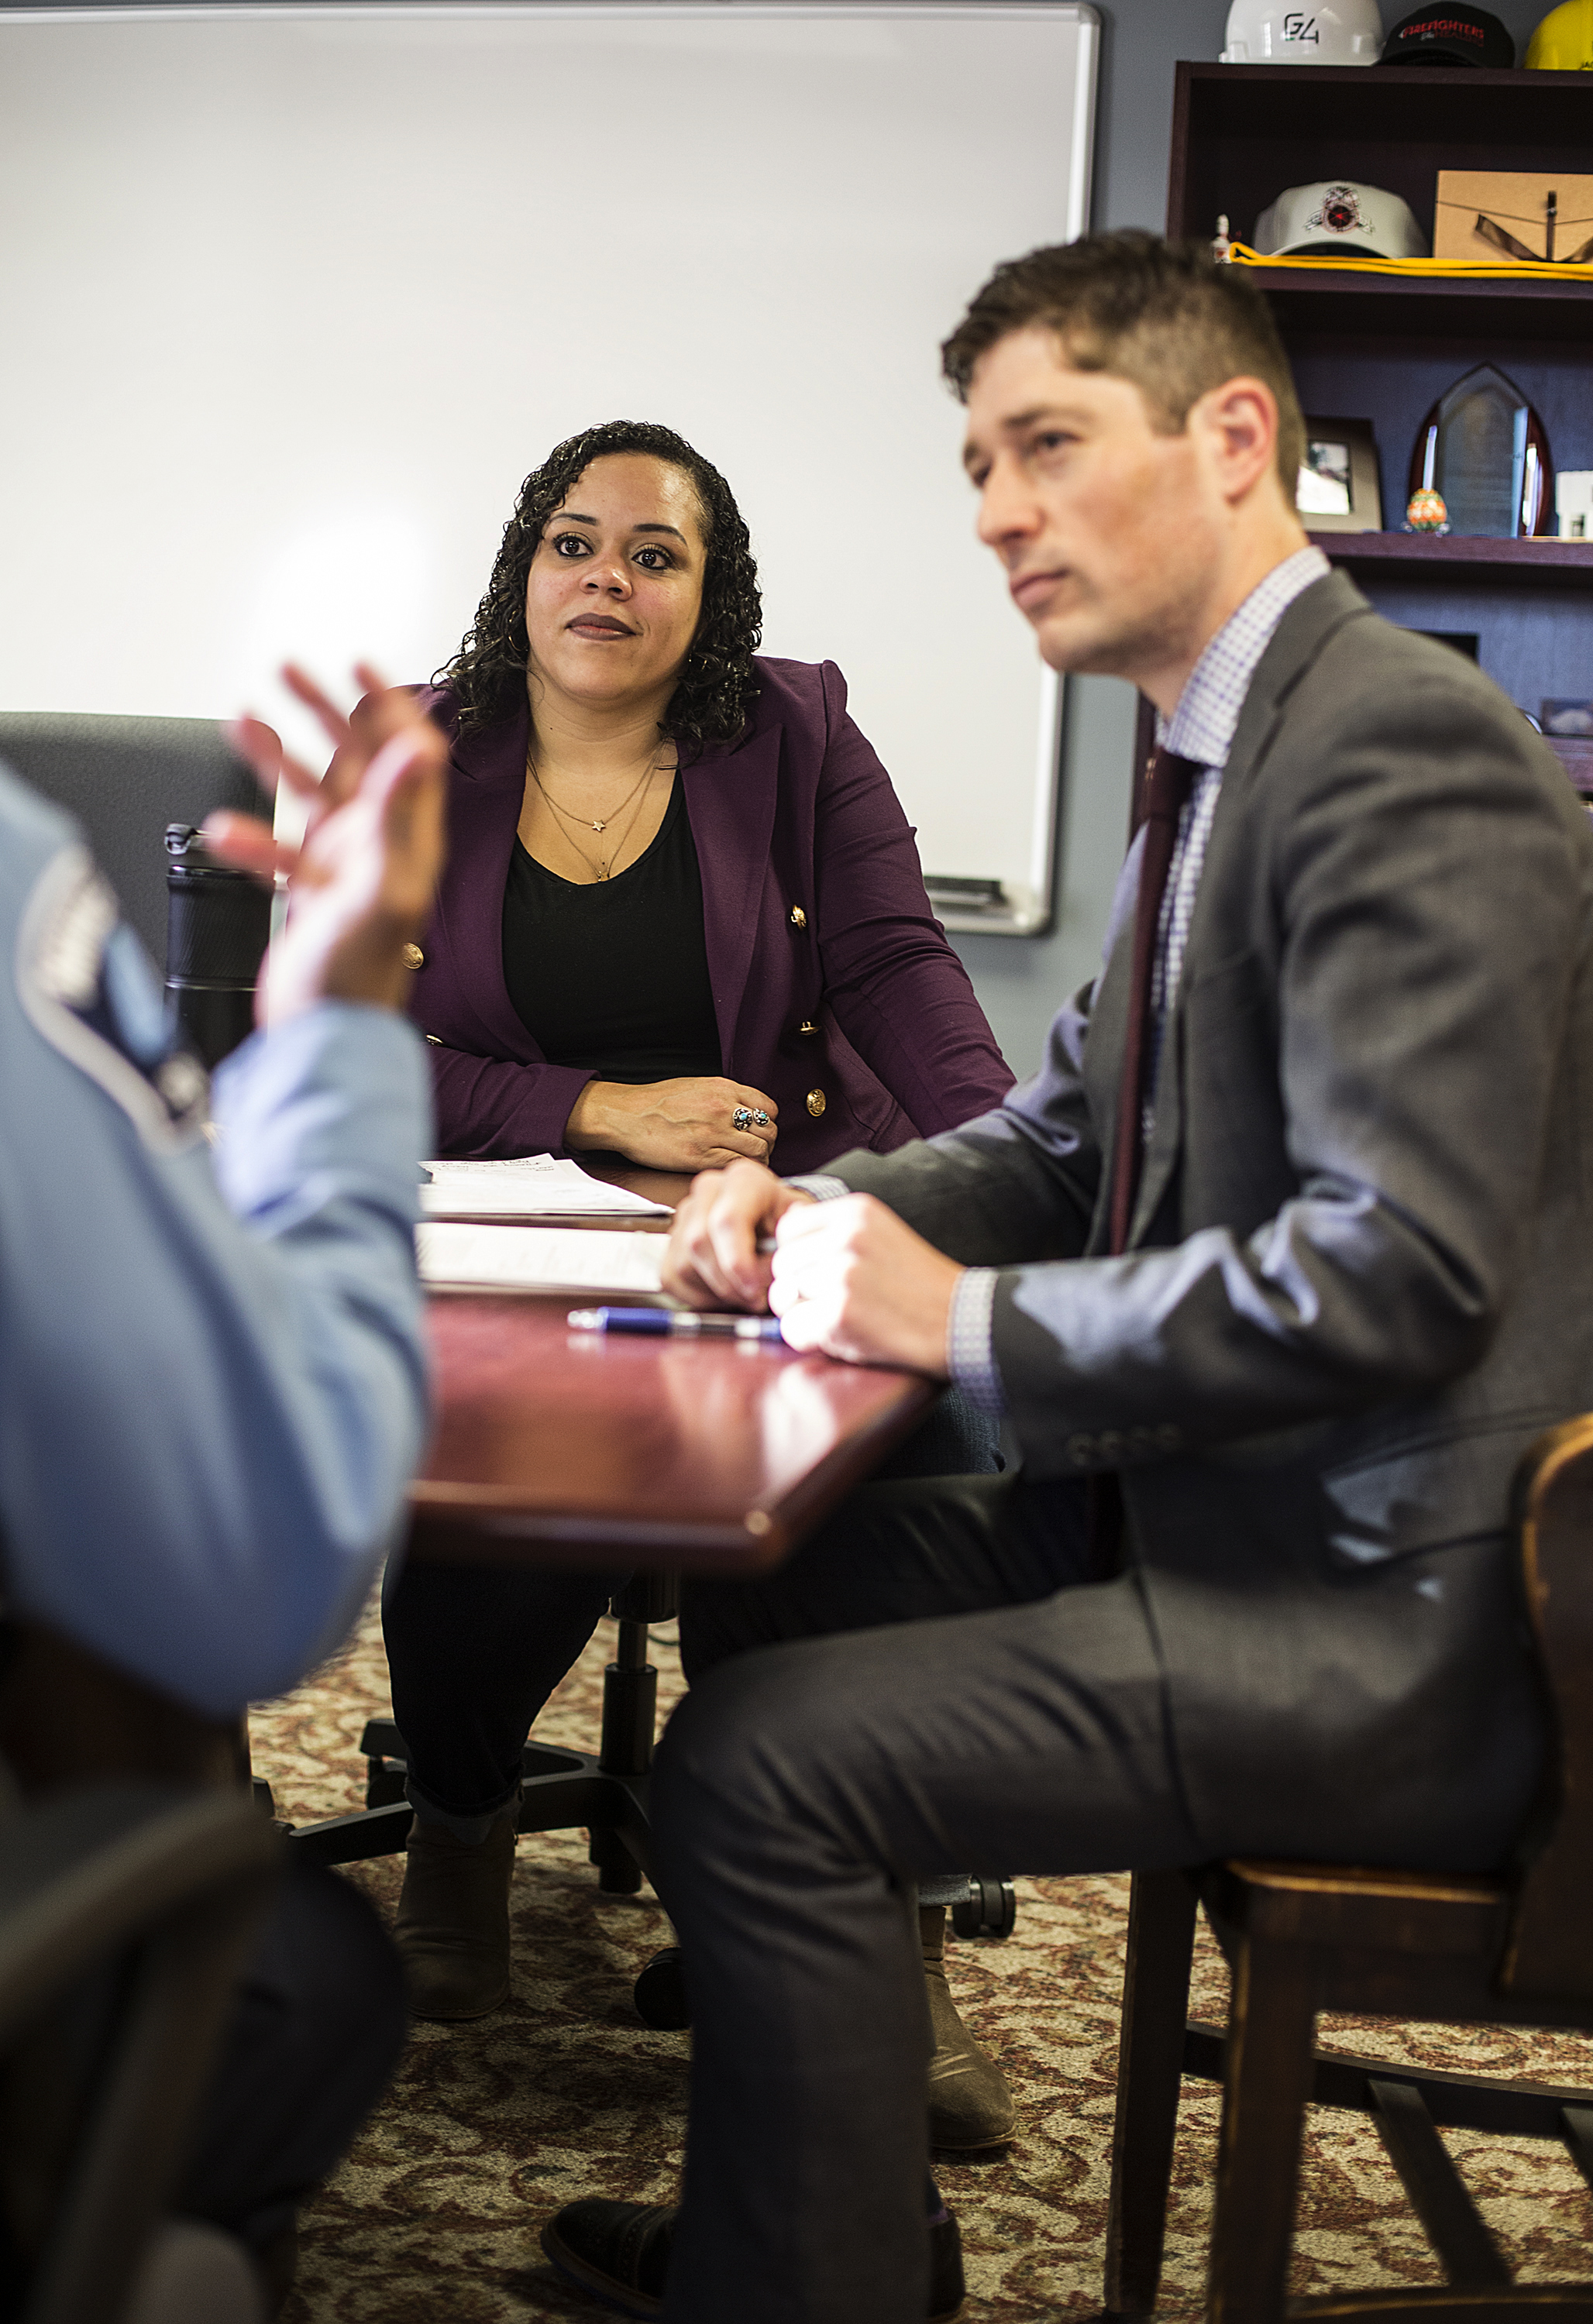 Jen White and her boss, Mayor Jacob Frey, meet with Minneapolis Police Chief Medaria Arradondo.